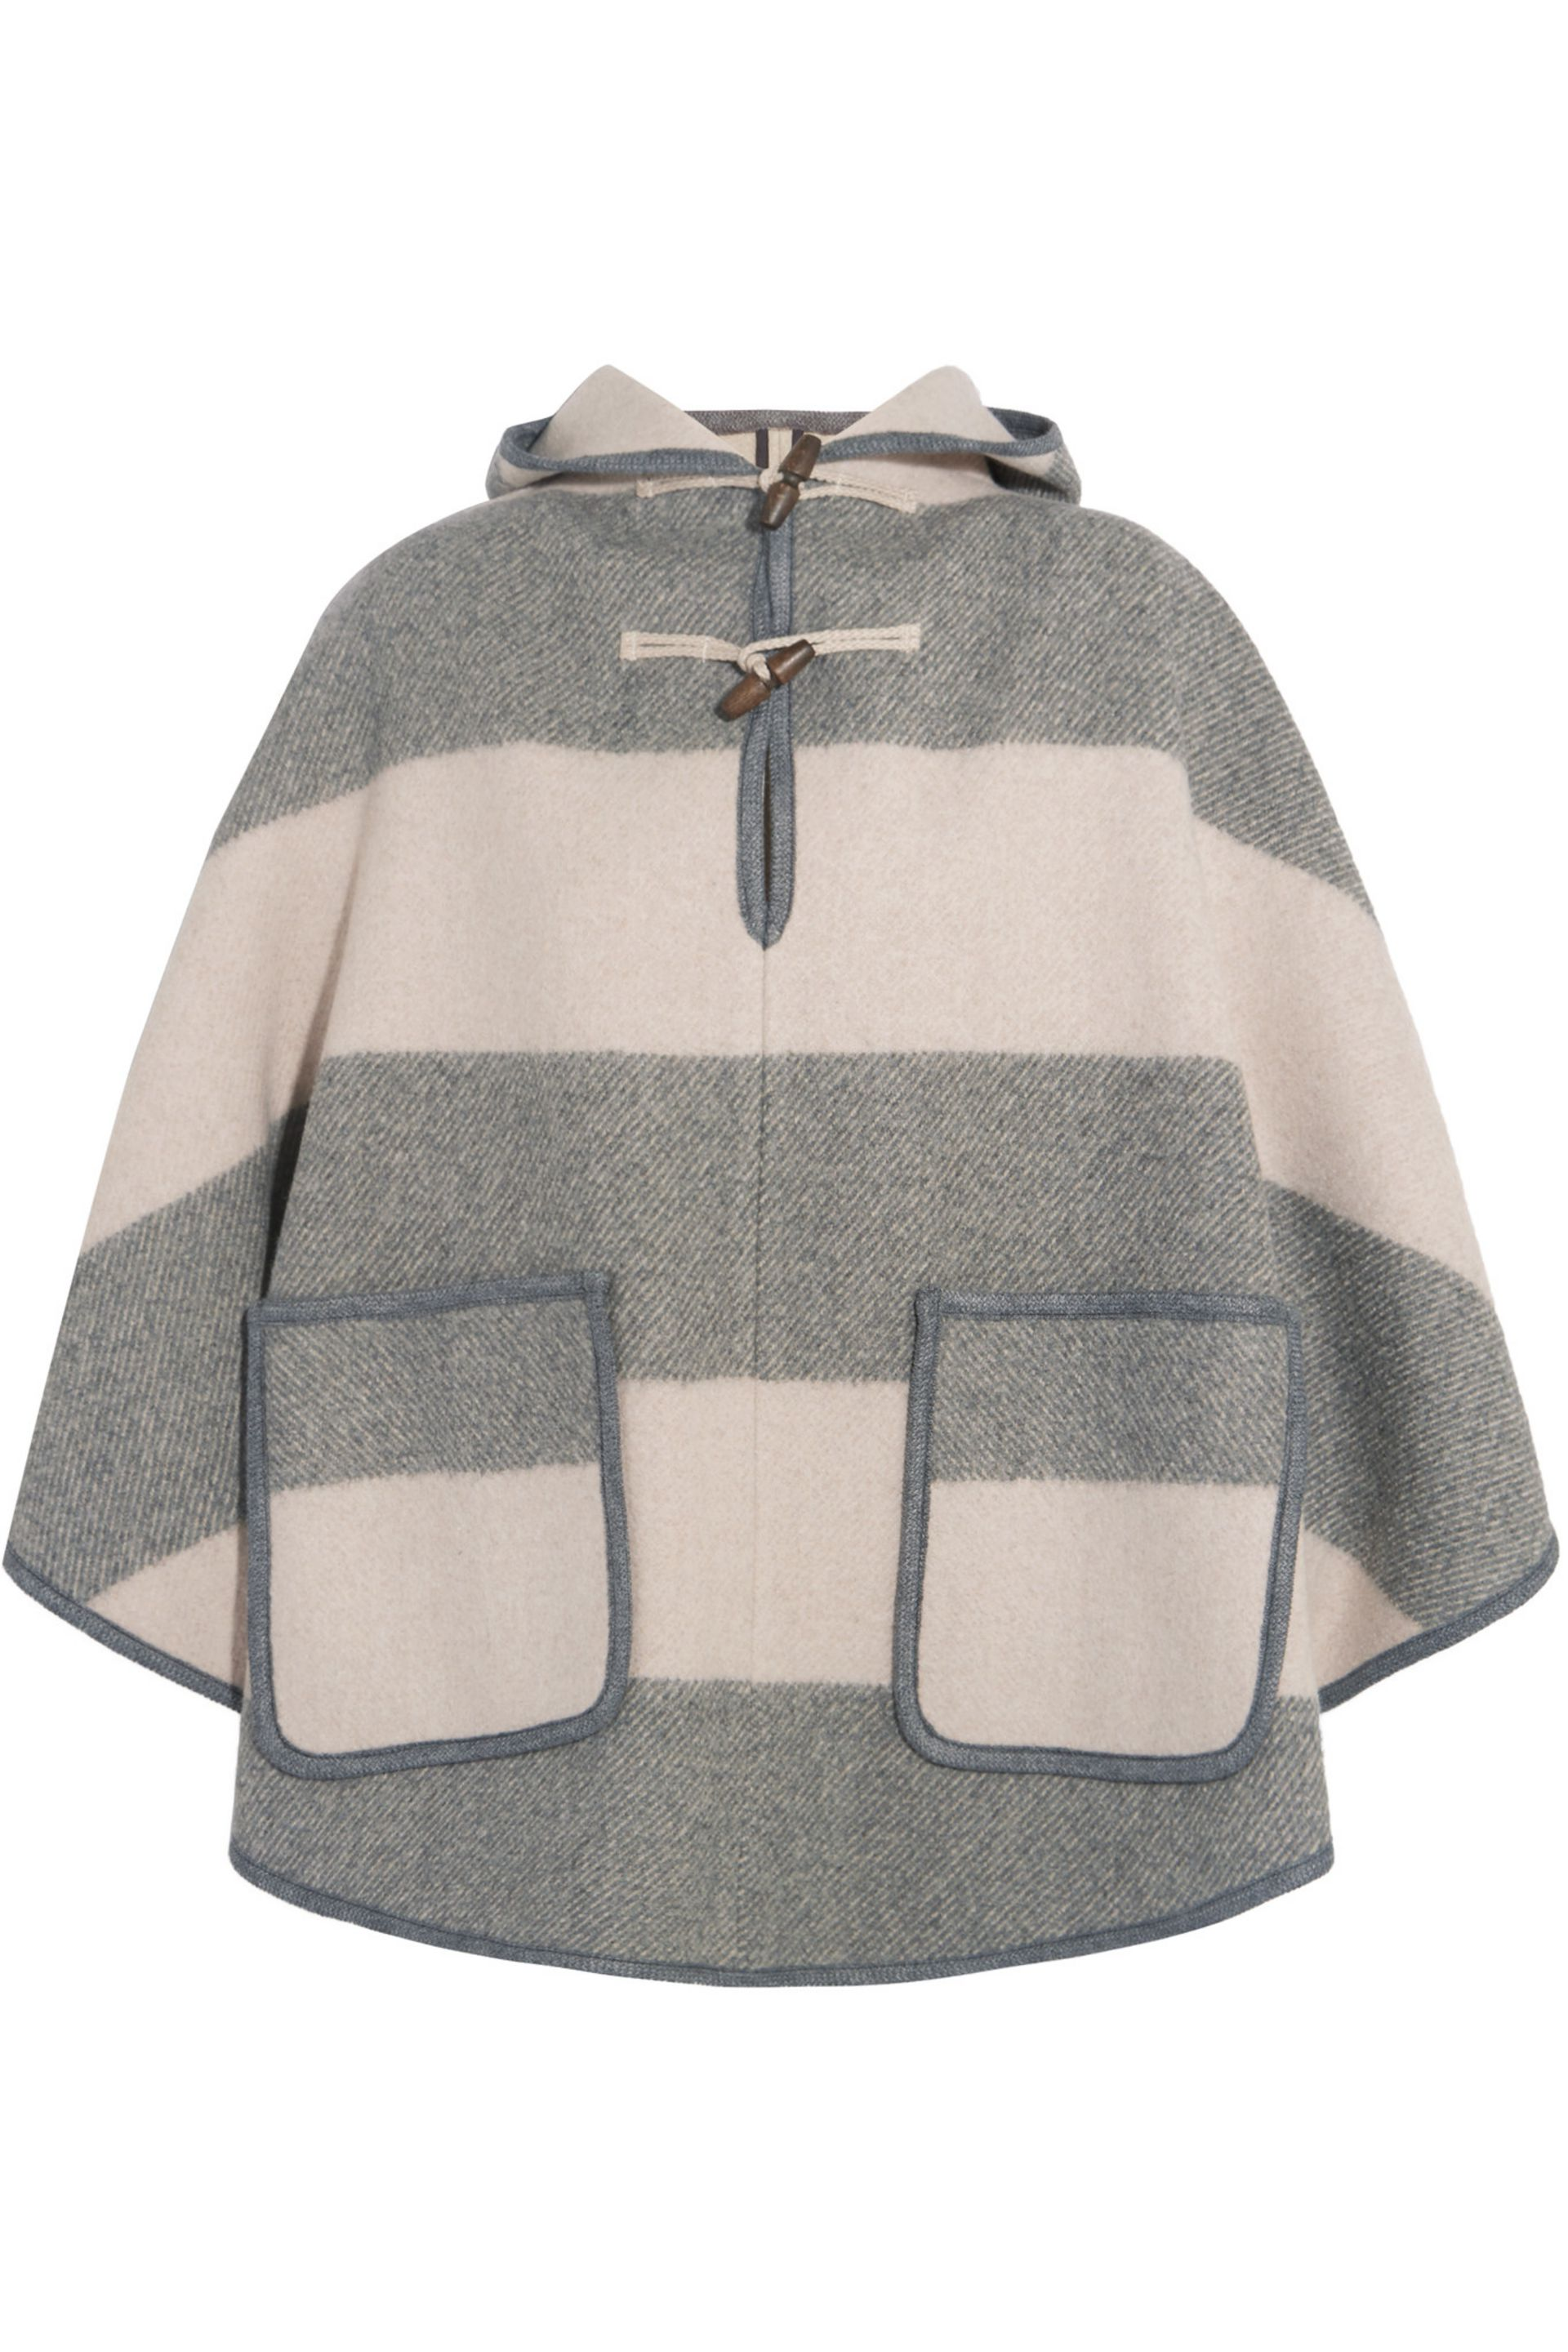 mih jeans cape